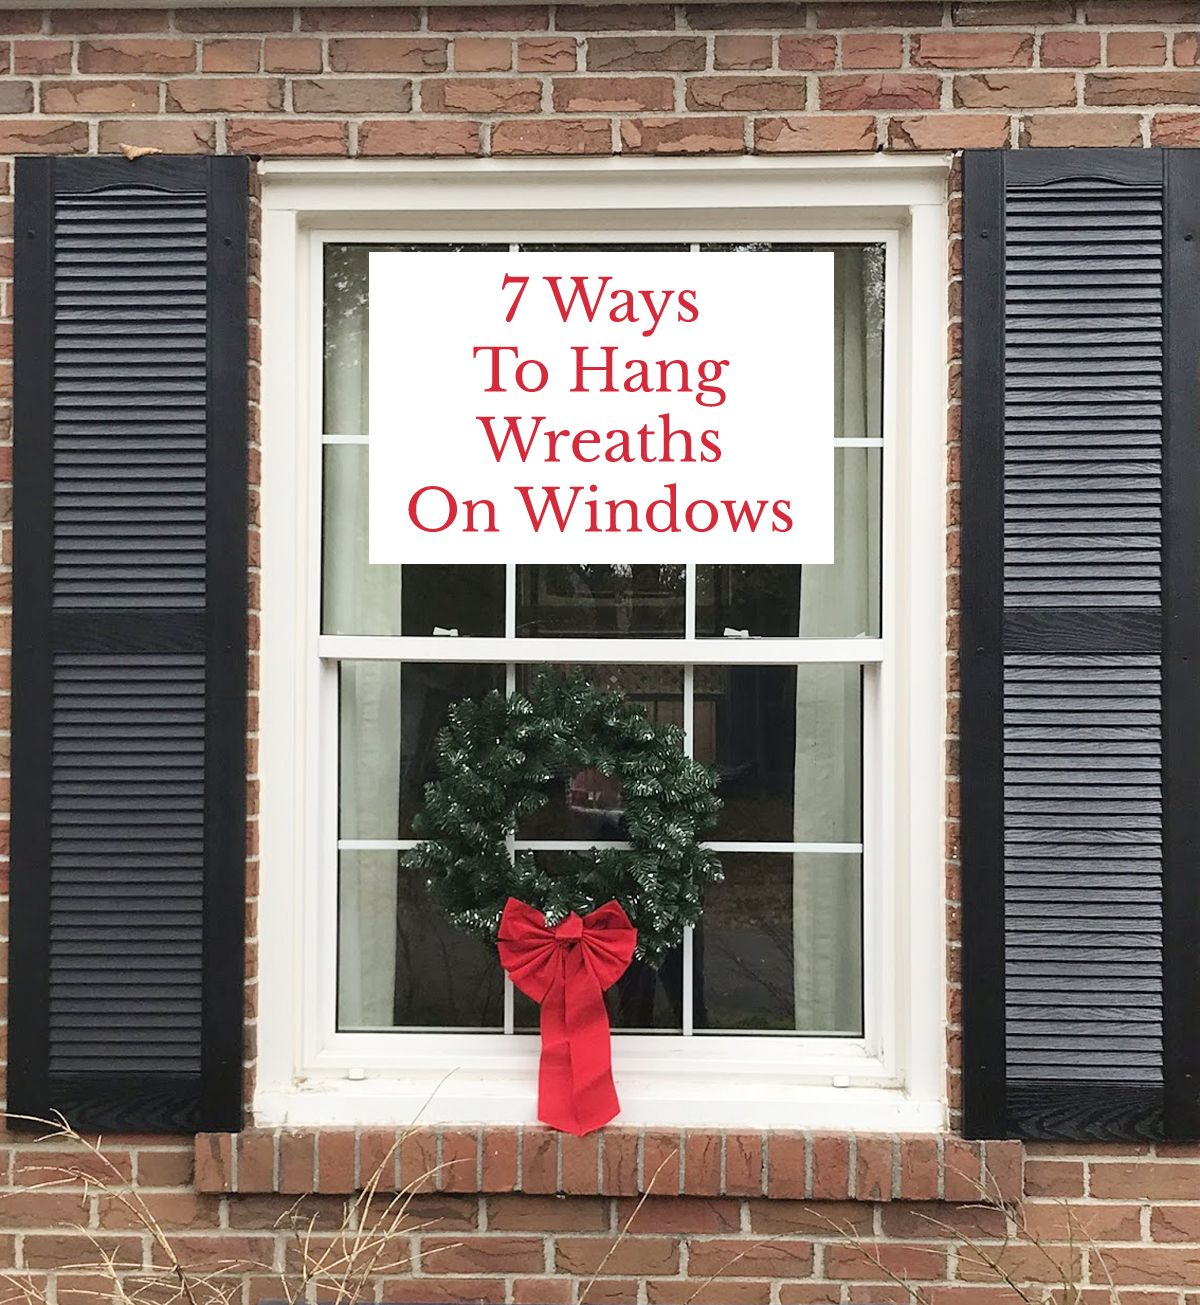 7 Ways To Hang Wreaths On Windows Rambling Renovators Outdoor Christmas Wreaths Christmas Window Lights Exterior Christmas Lights